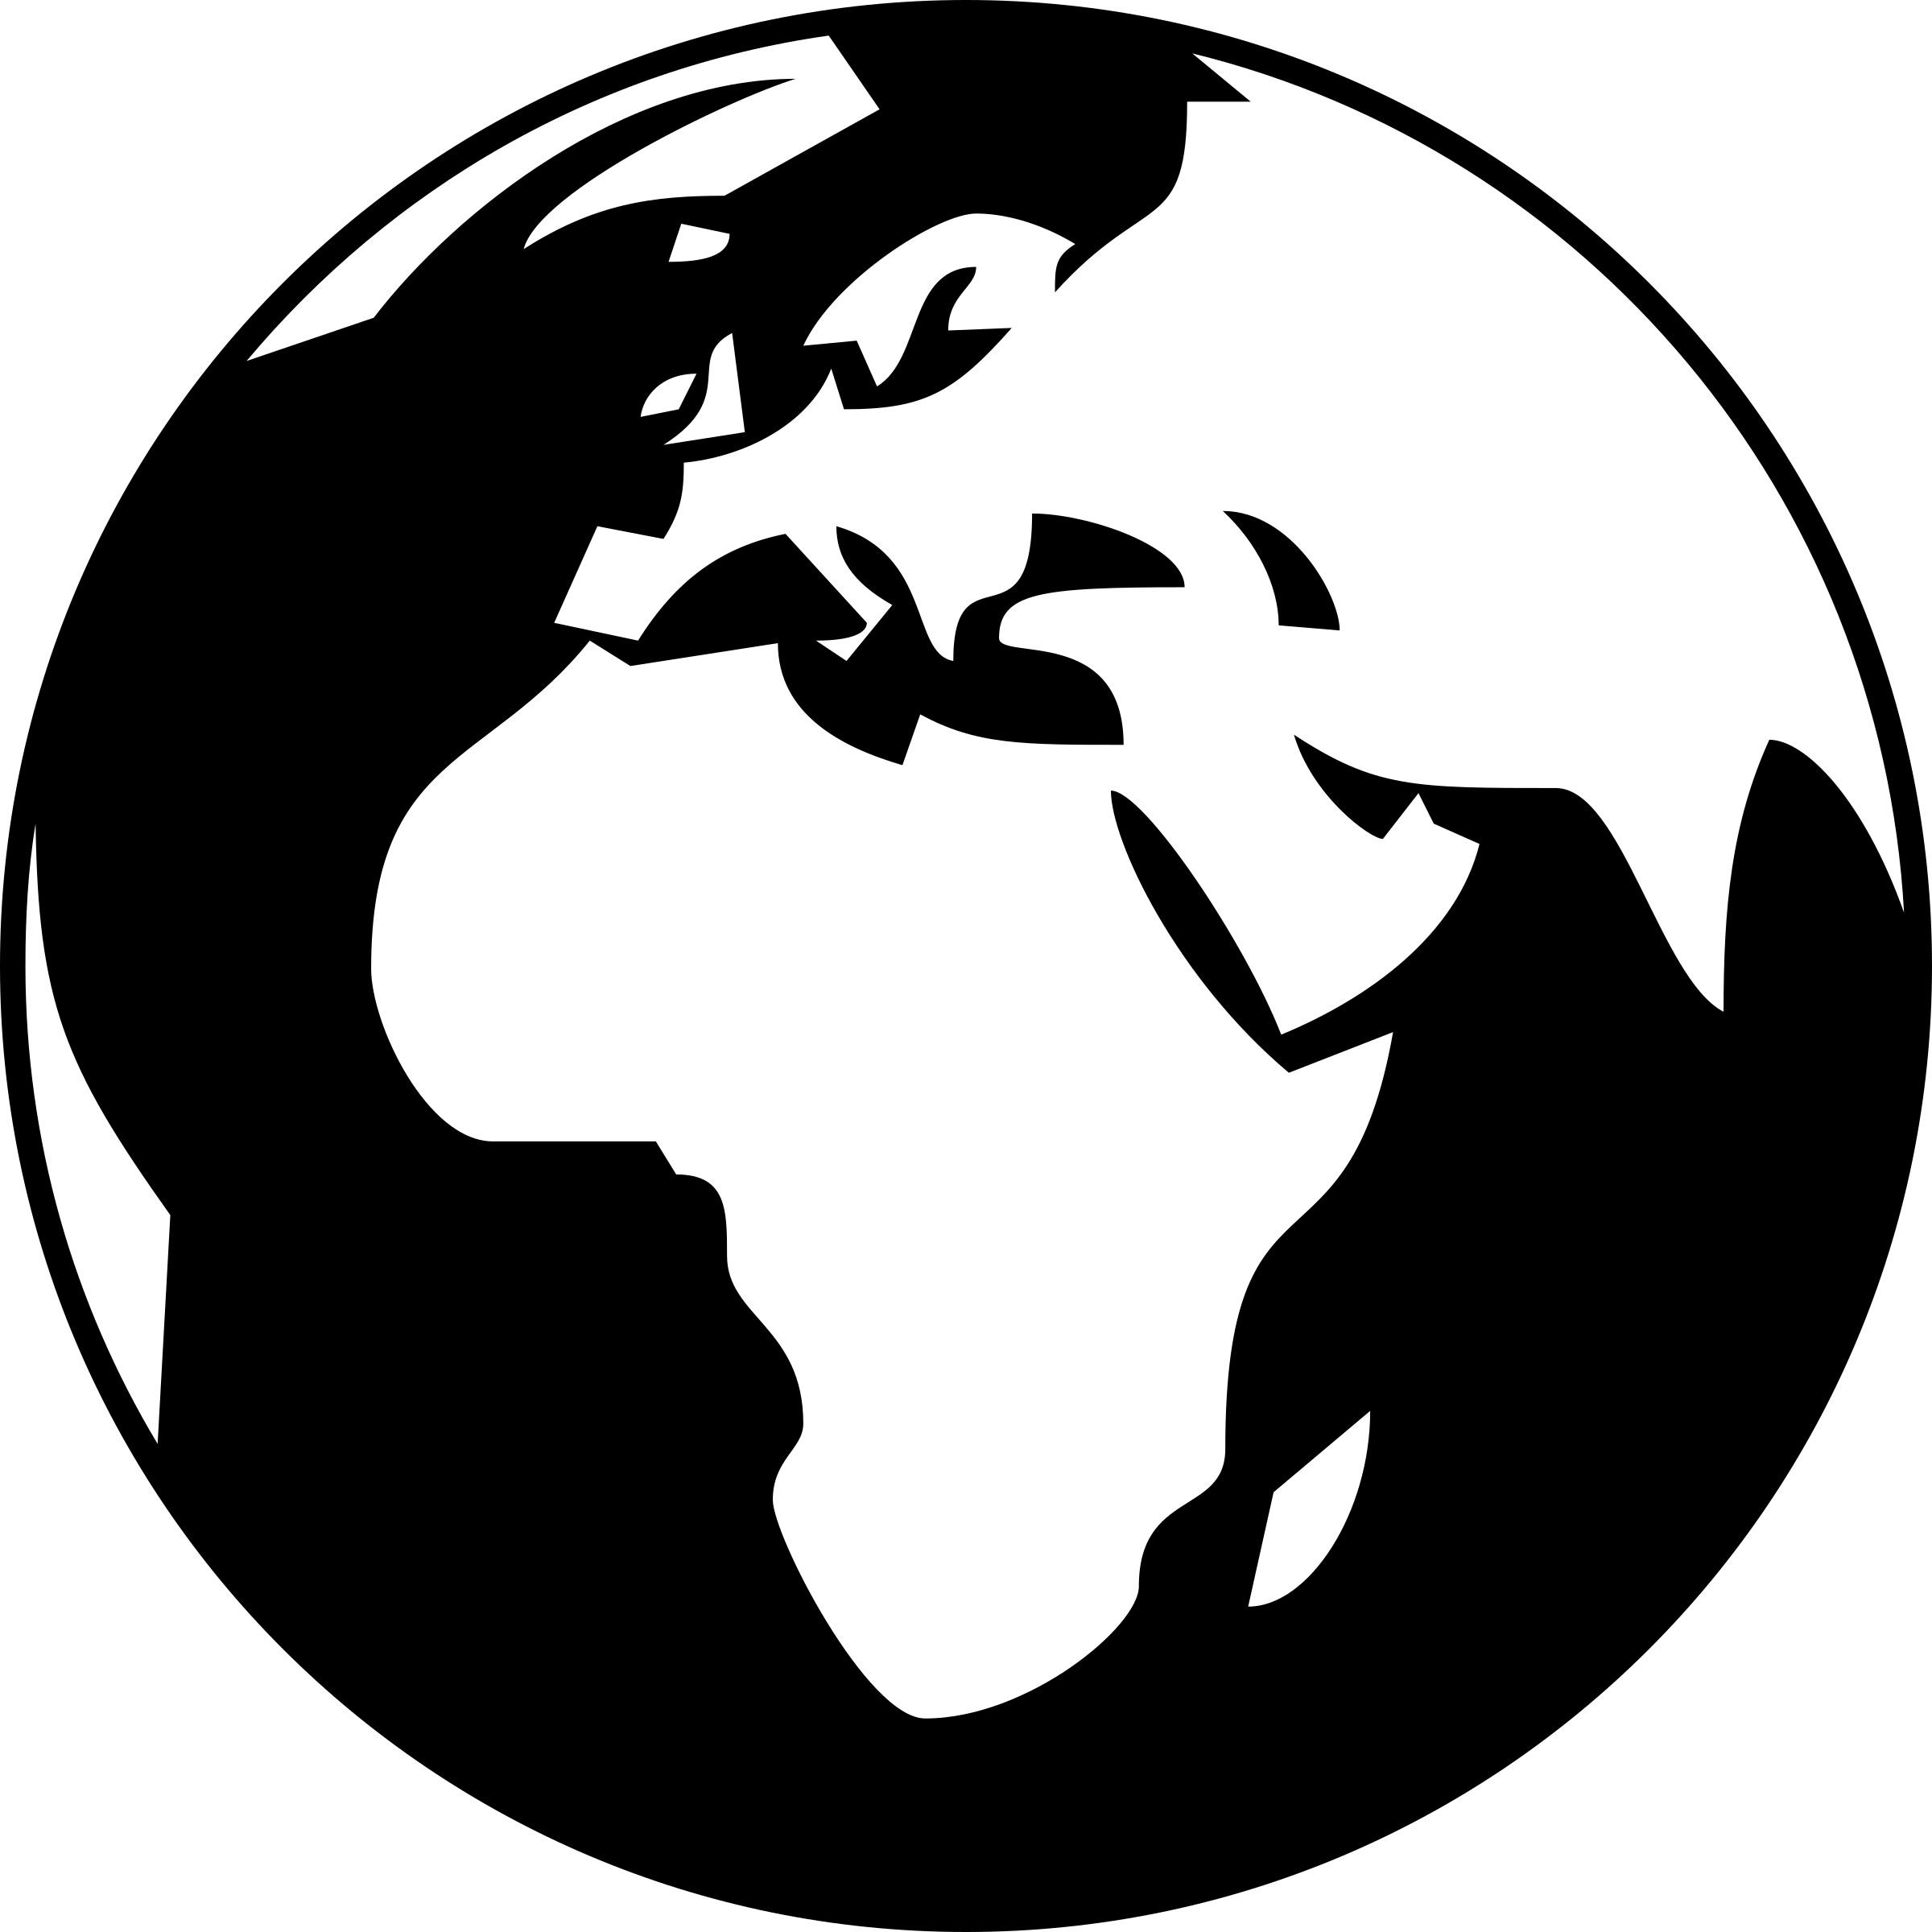 Black and white earth png. Collection of clipart